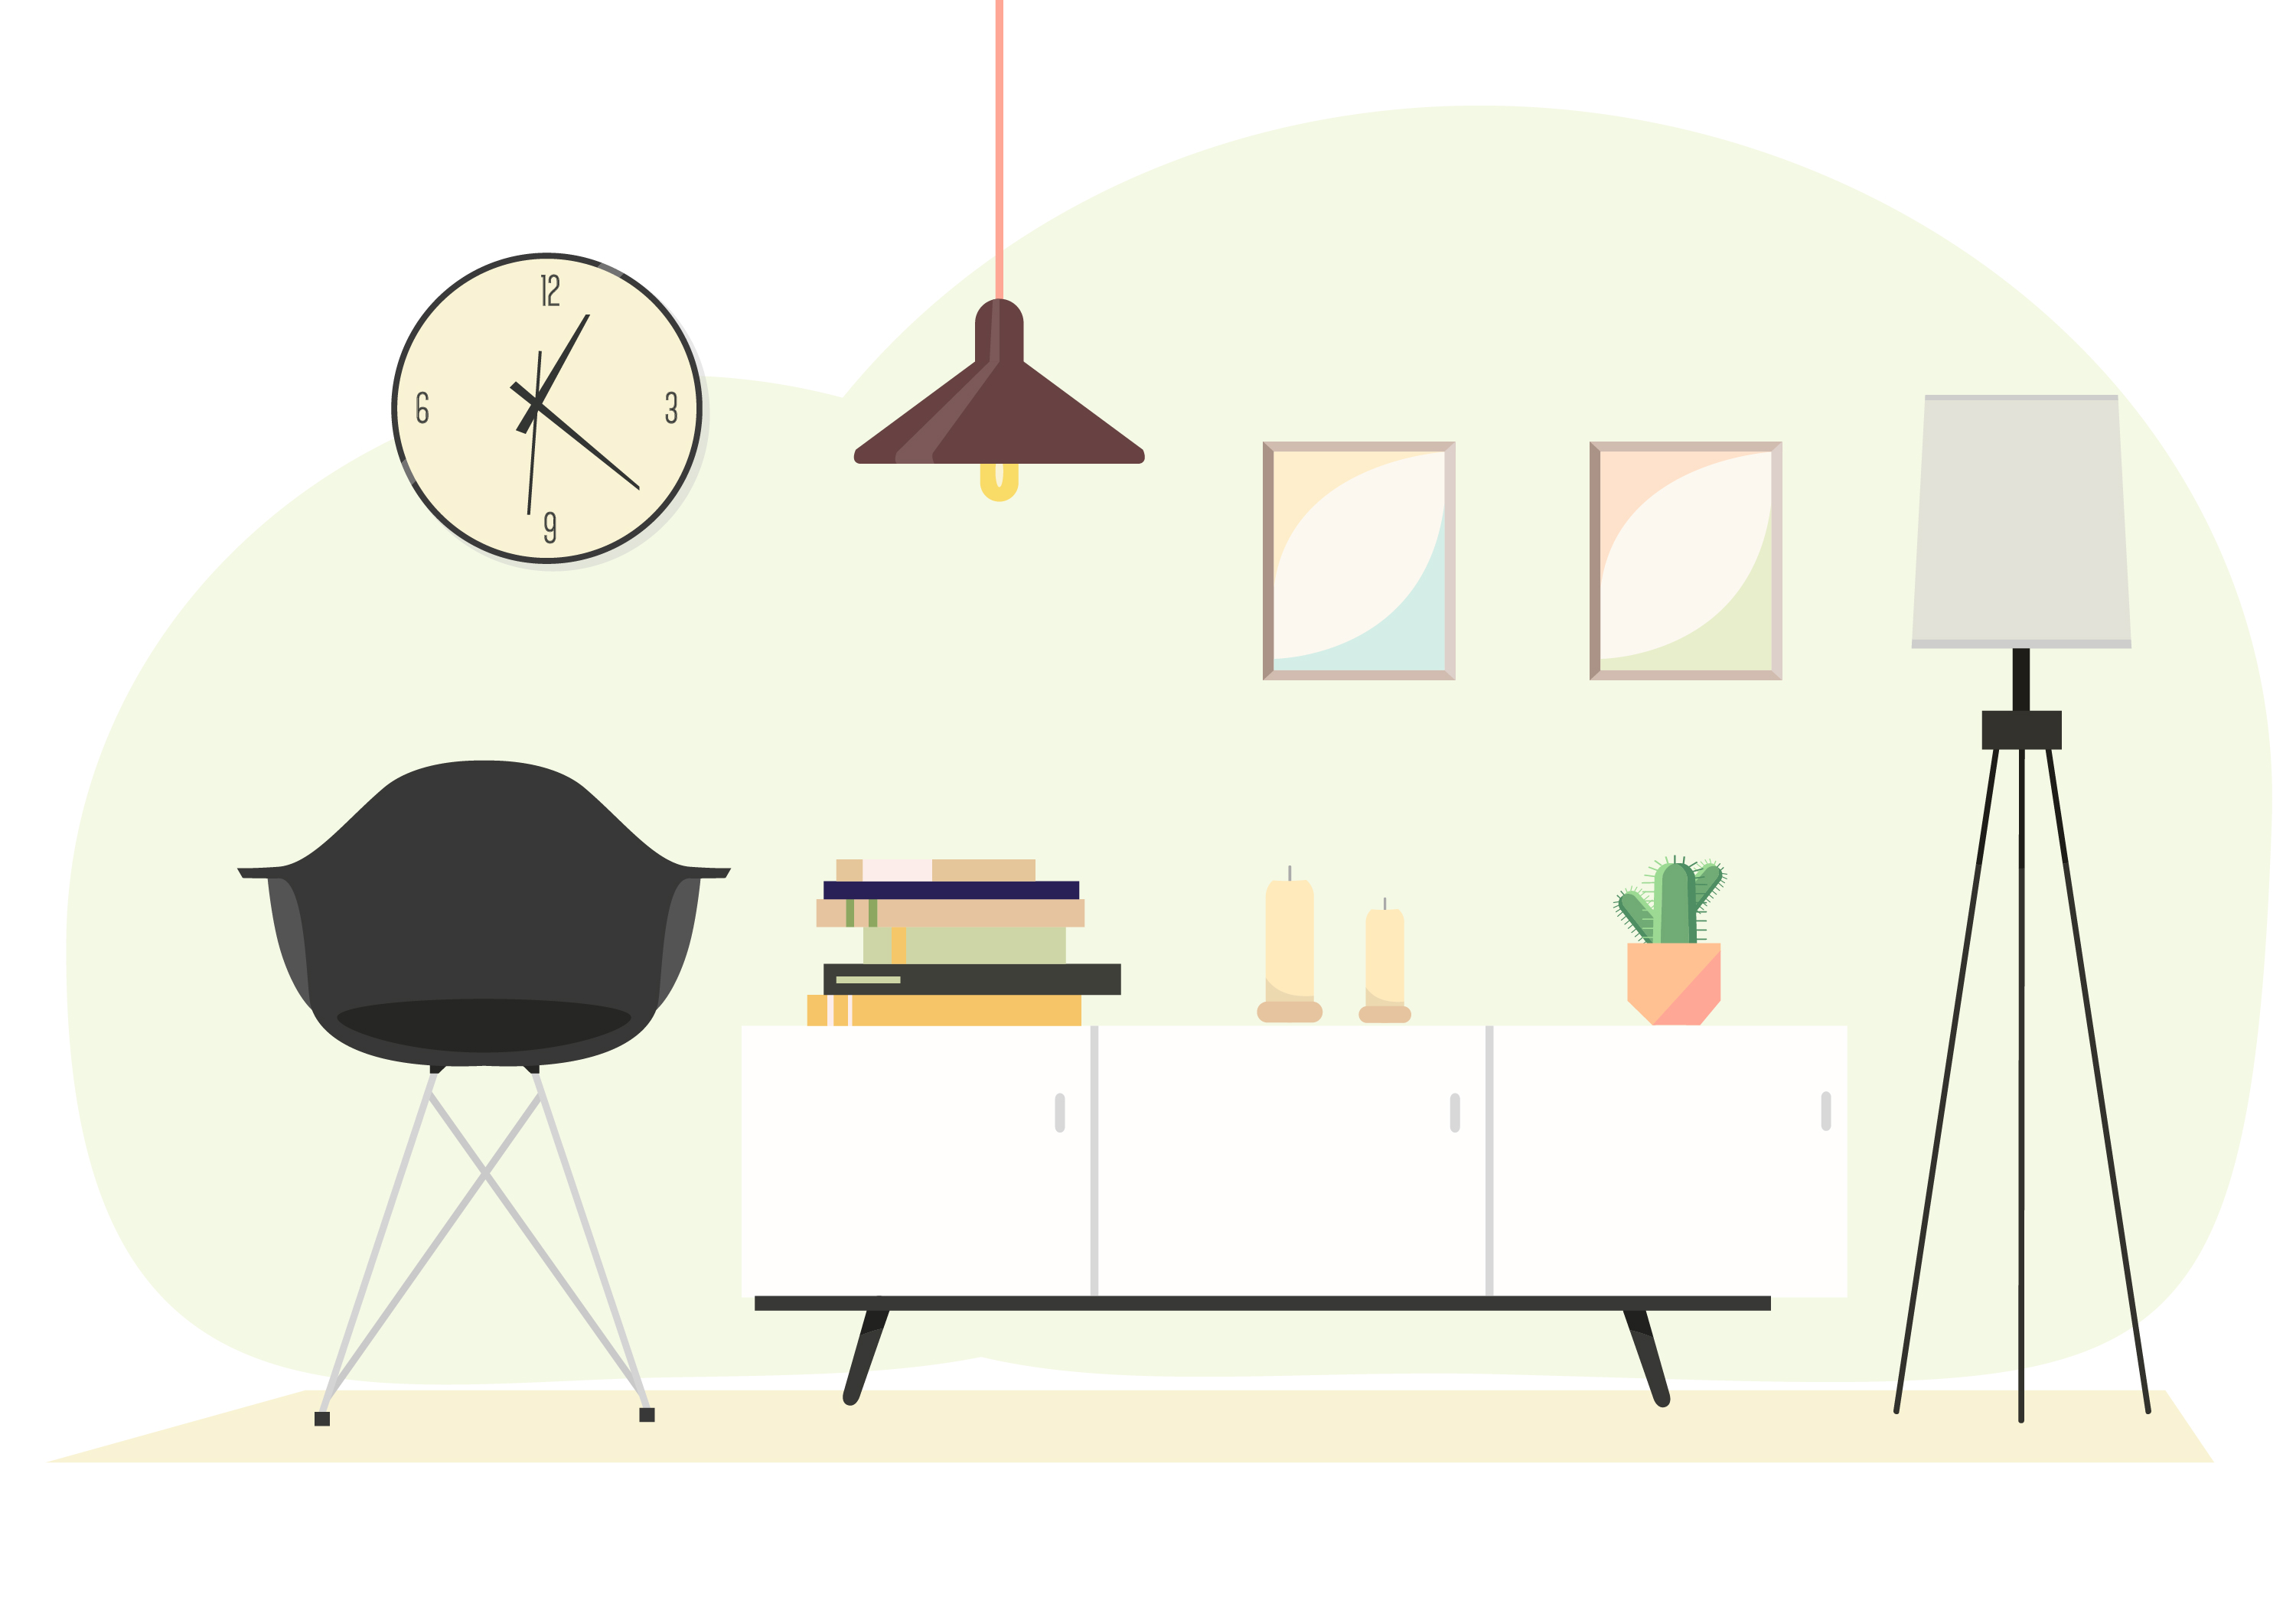 Vector Interior Design Illustration  Download Free Vector Art, Stock Graphics  Images